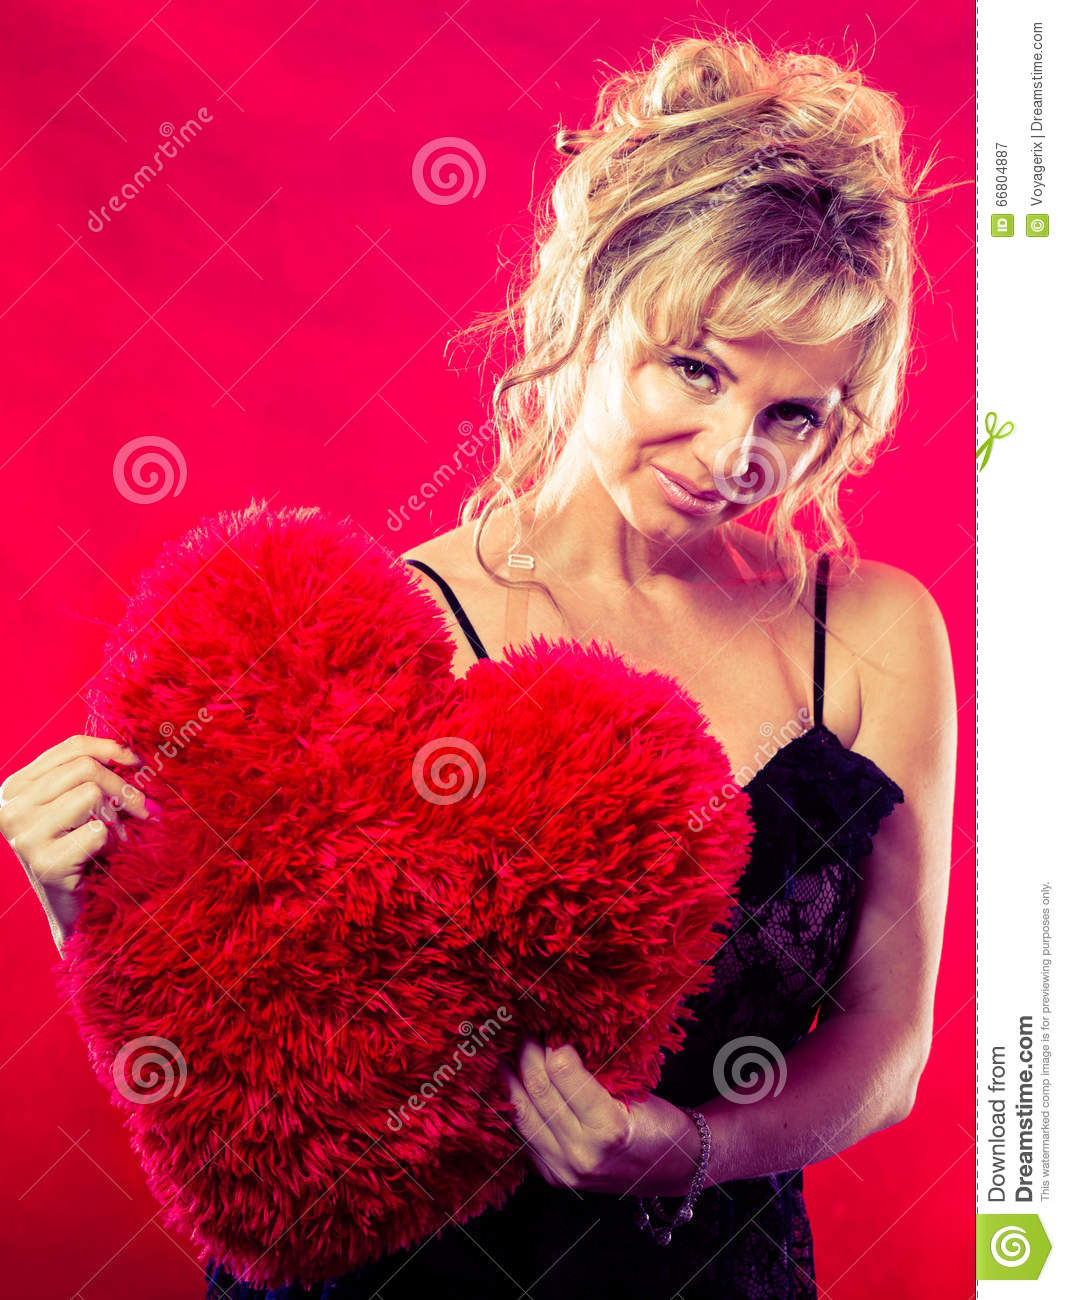 mature woman hug big red heart stock image - image of date, black